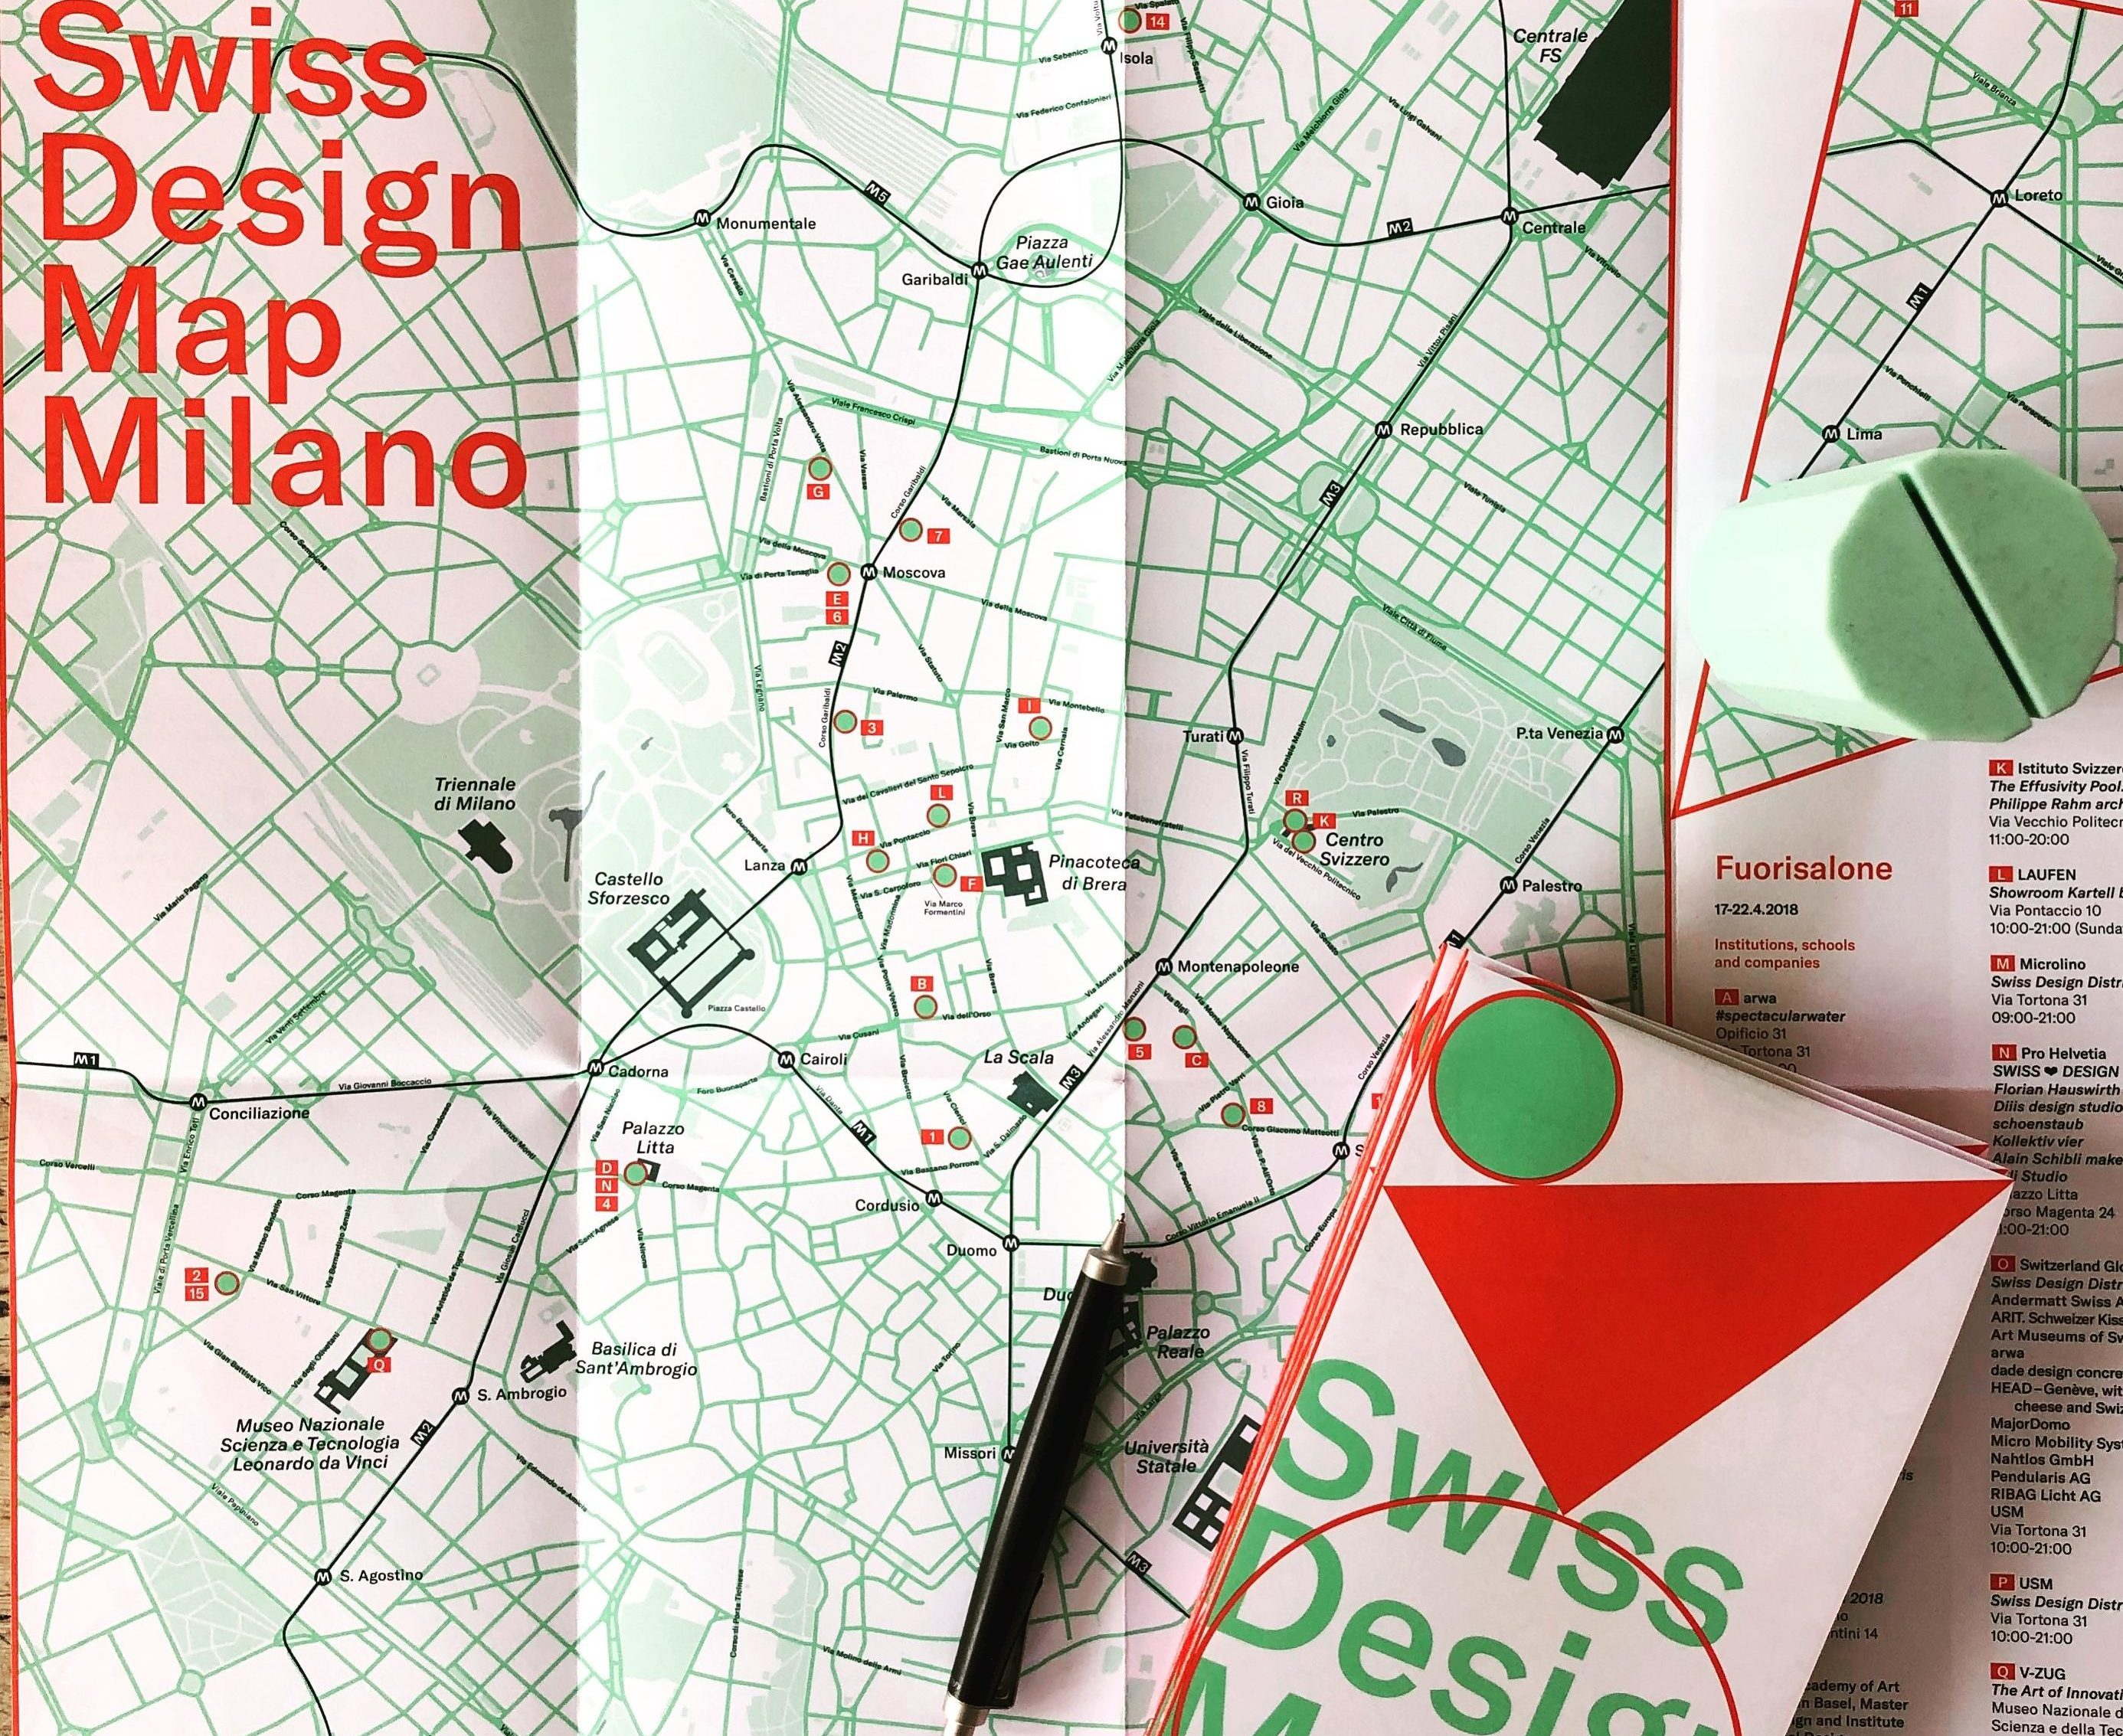 Swiss Design Map